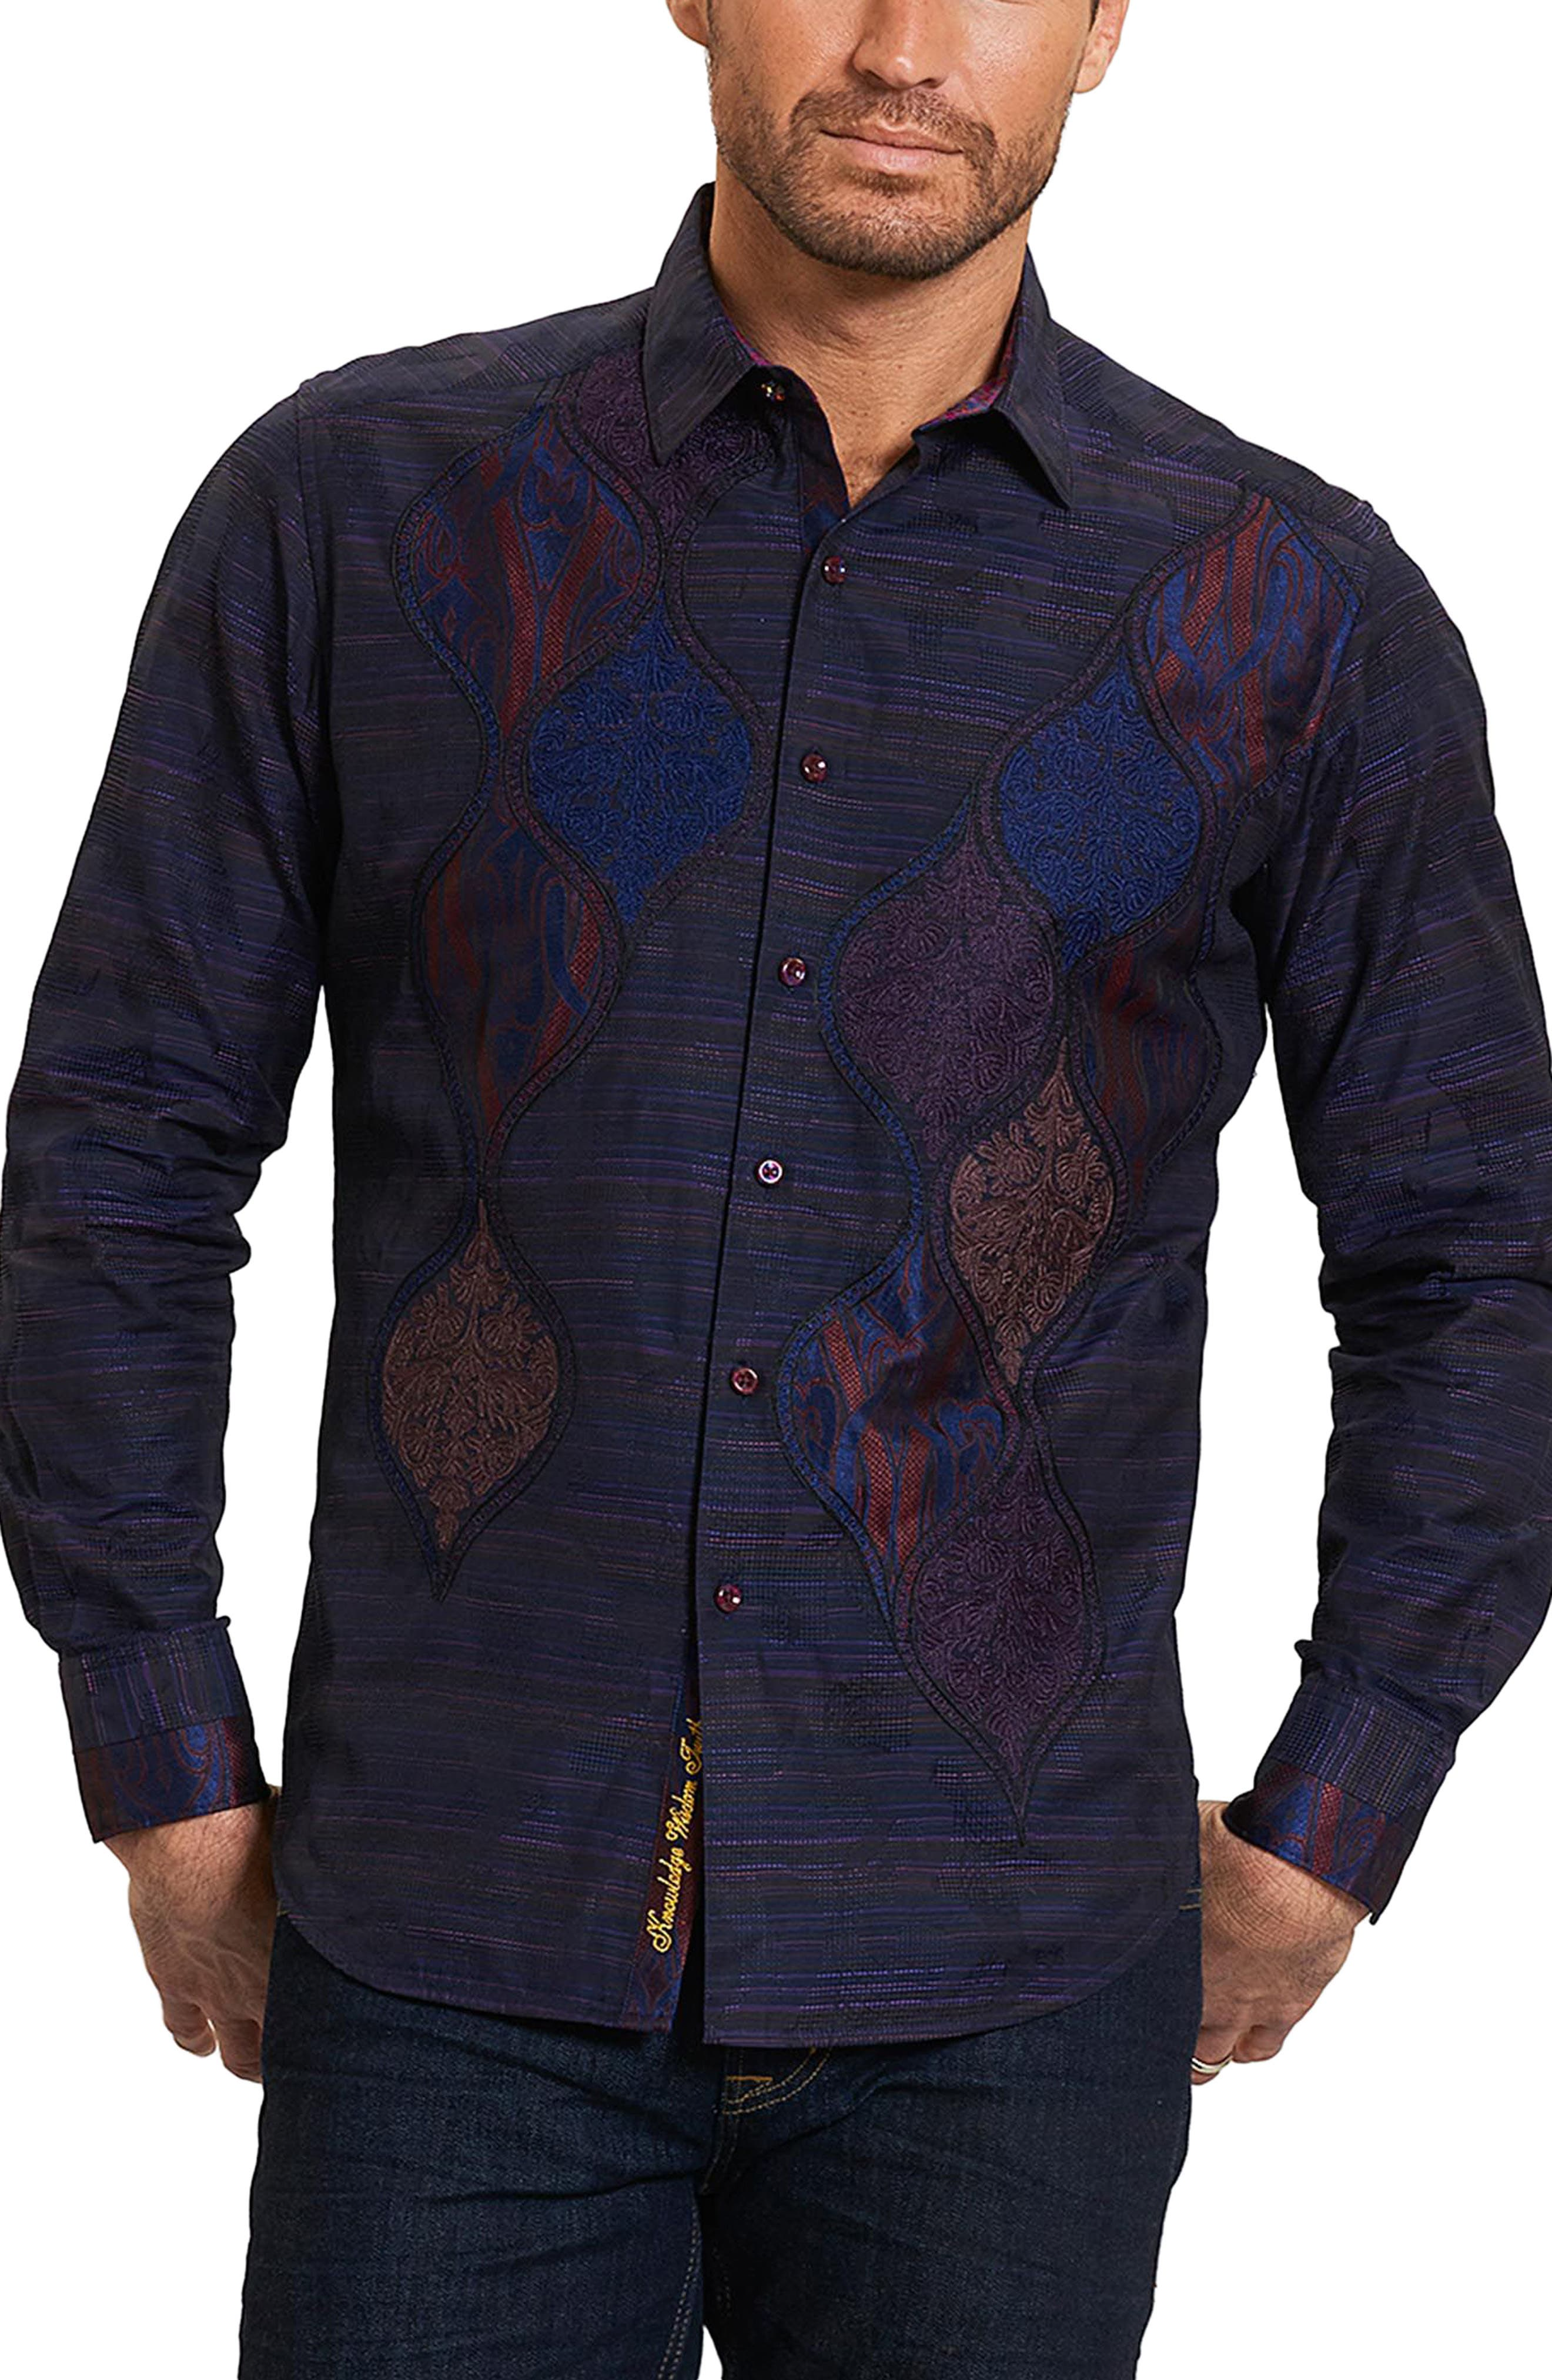 El Rey Classic Fit Embroidered Sport Shirt,                         Main,                         color, Purple